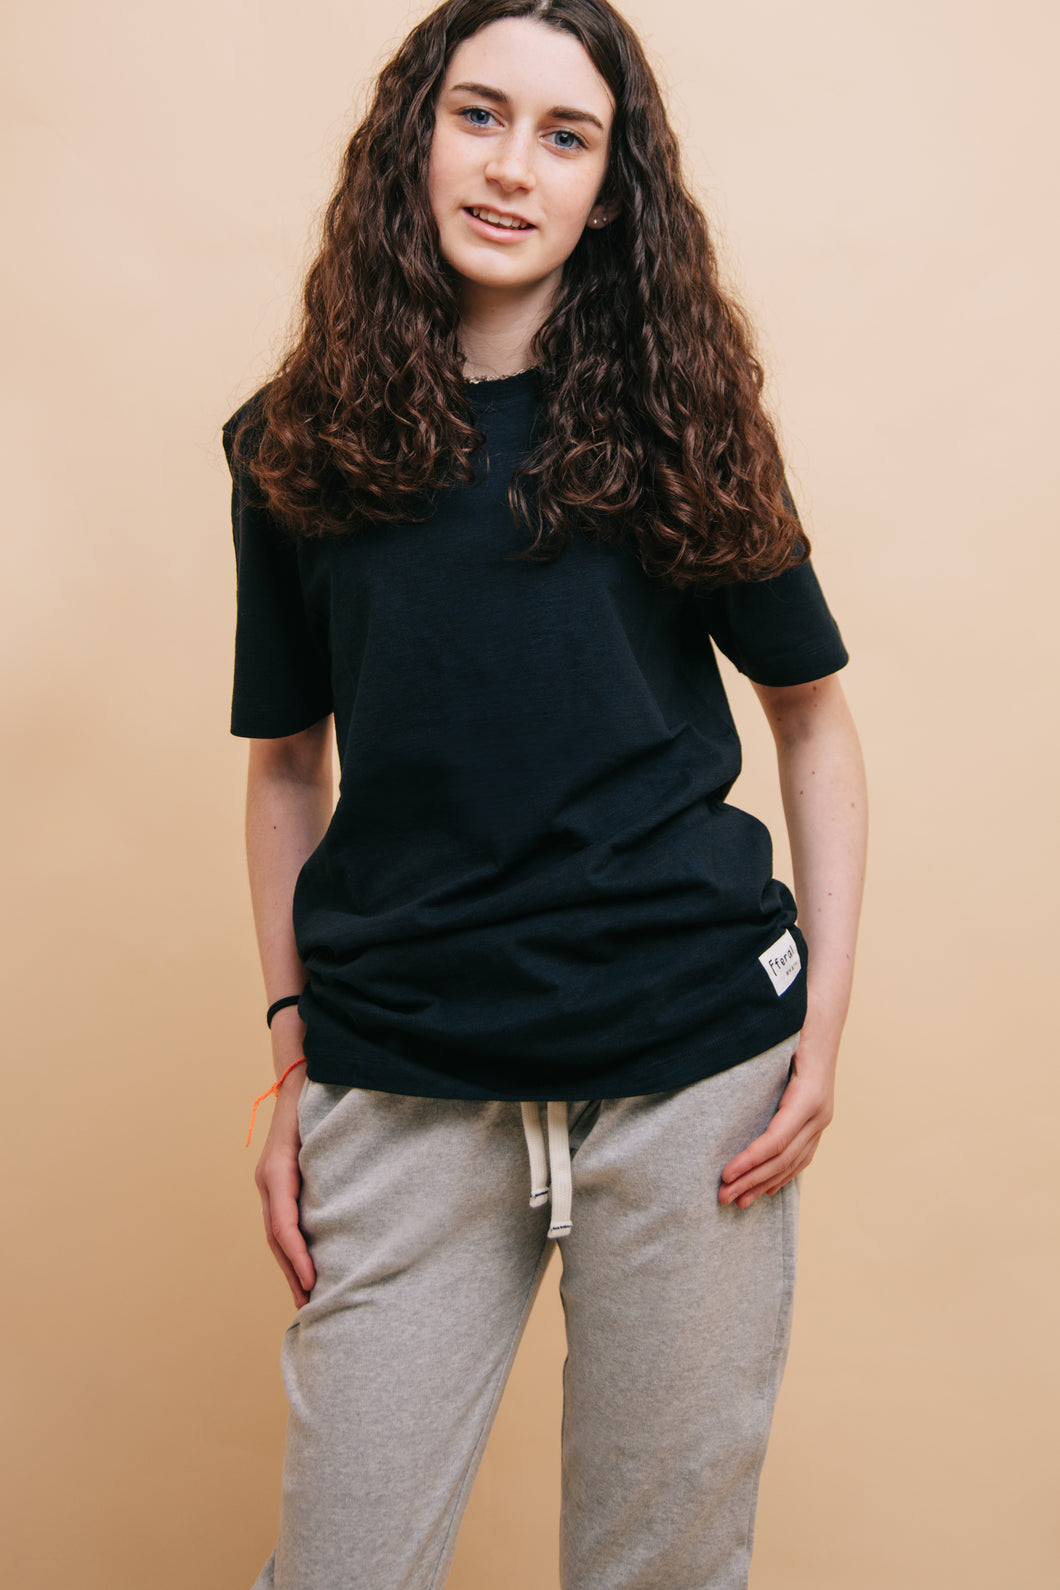 Black Slub T-Shirt - Sustainable Vegan Cotton (Unisex)